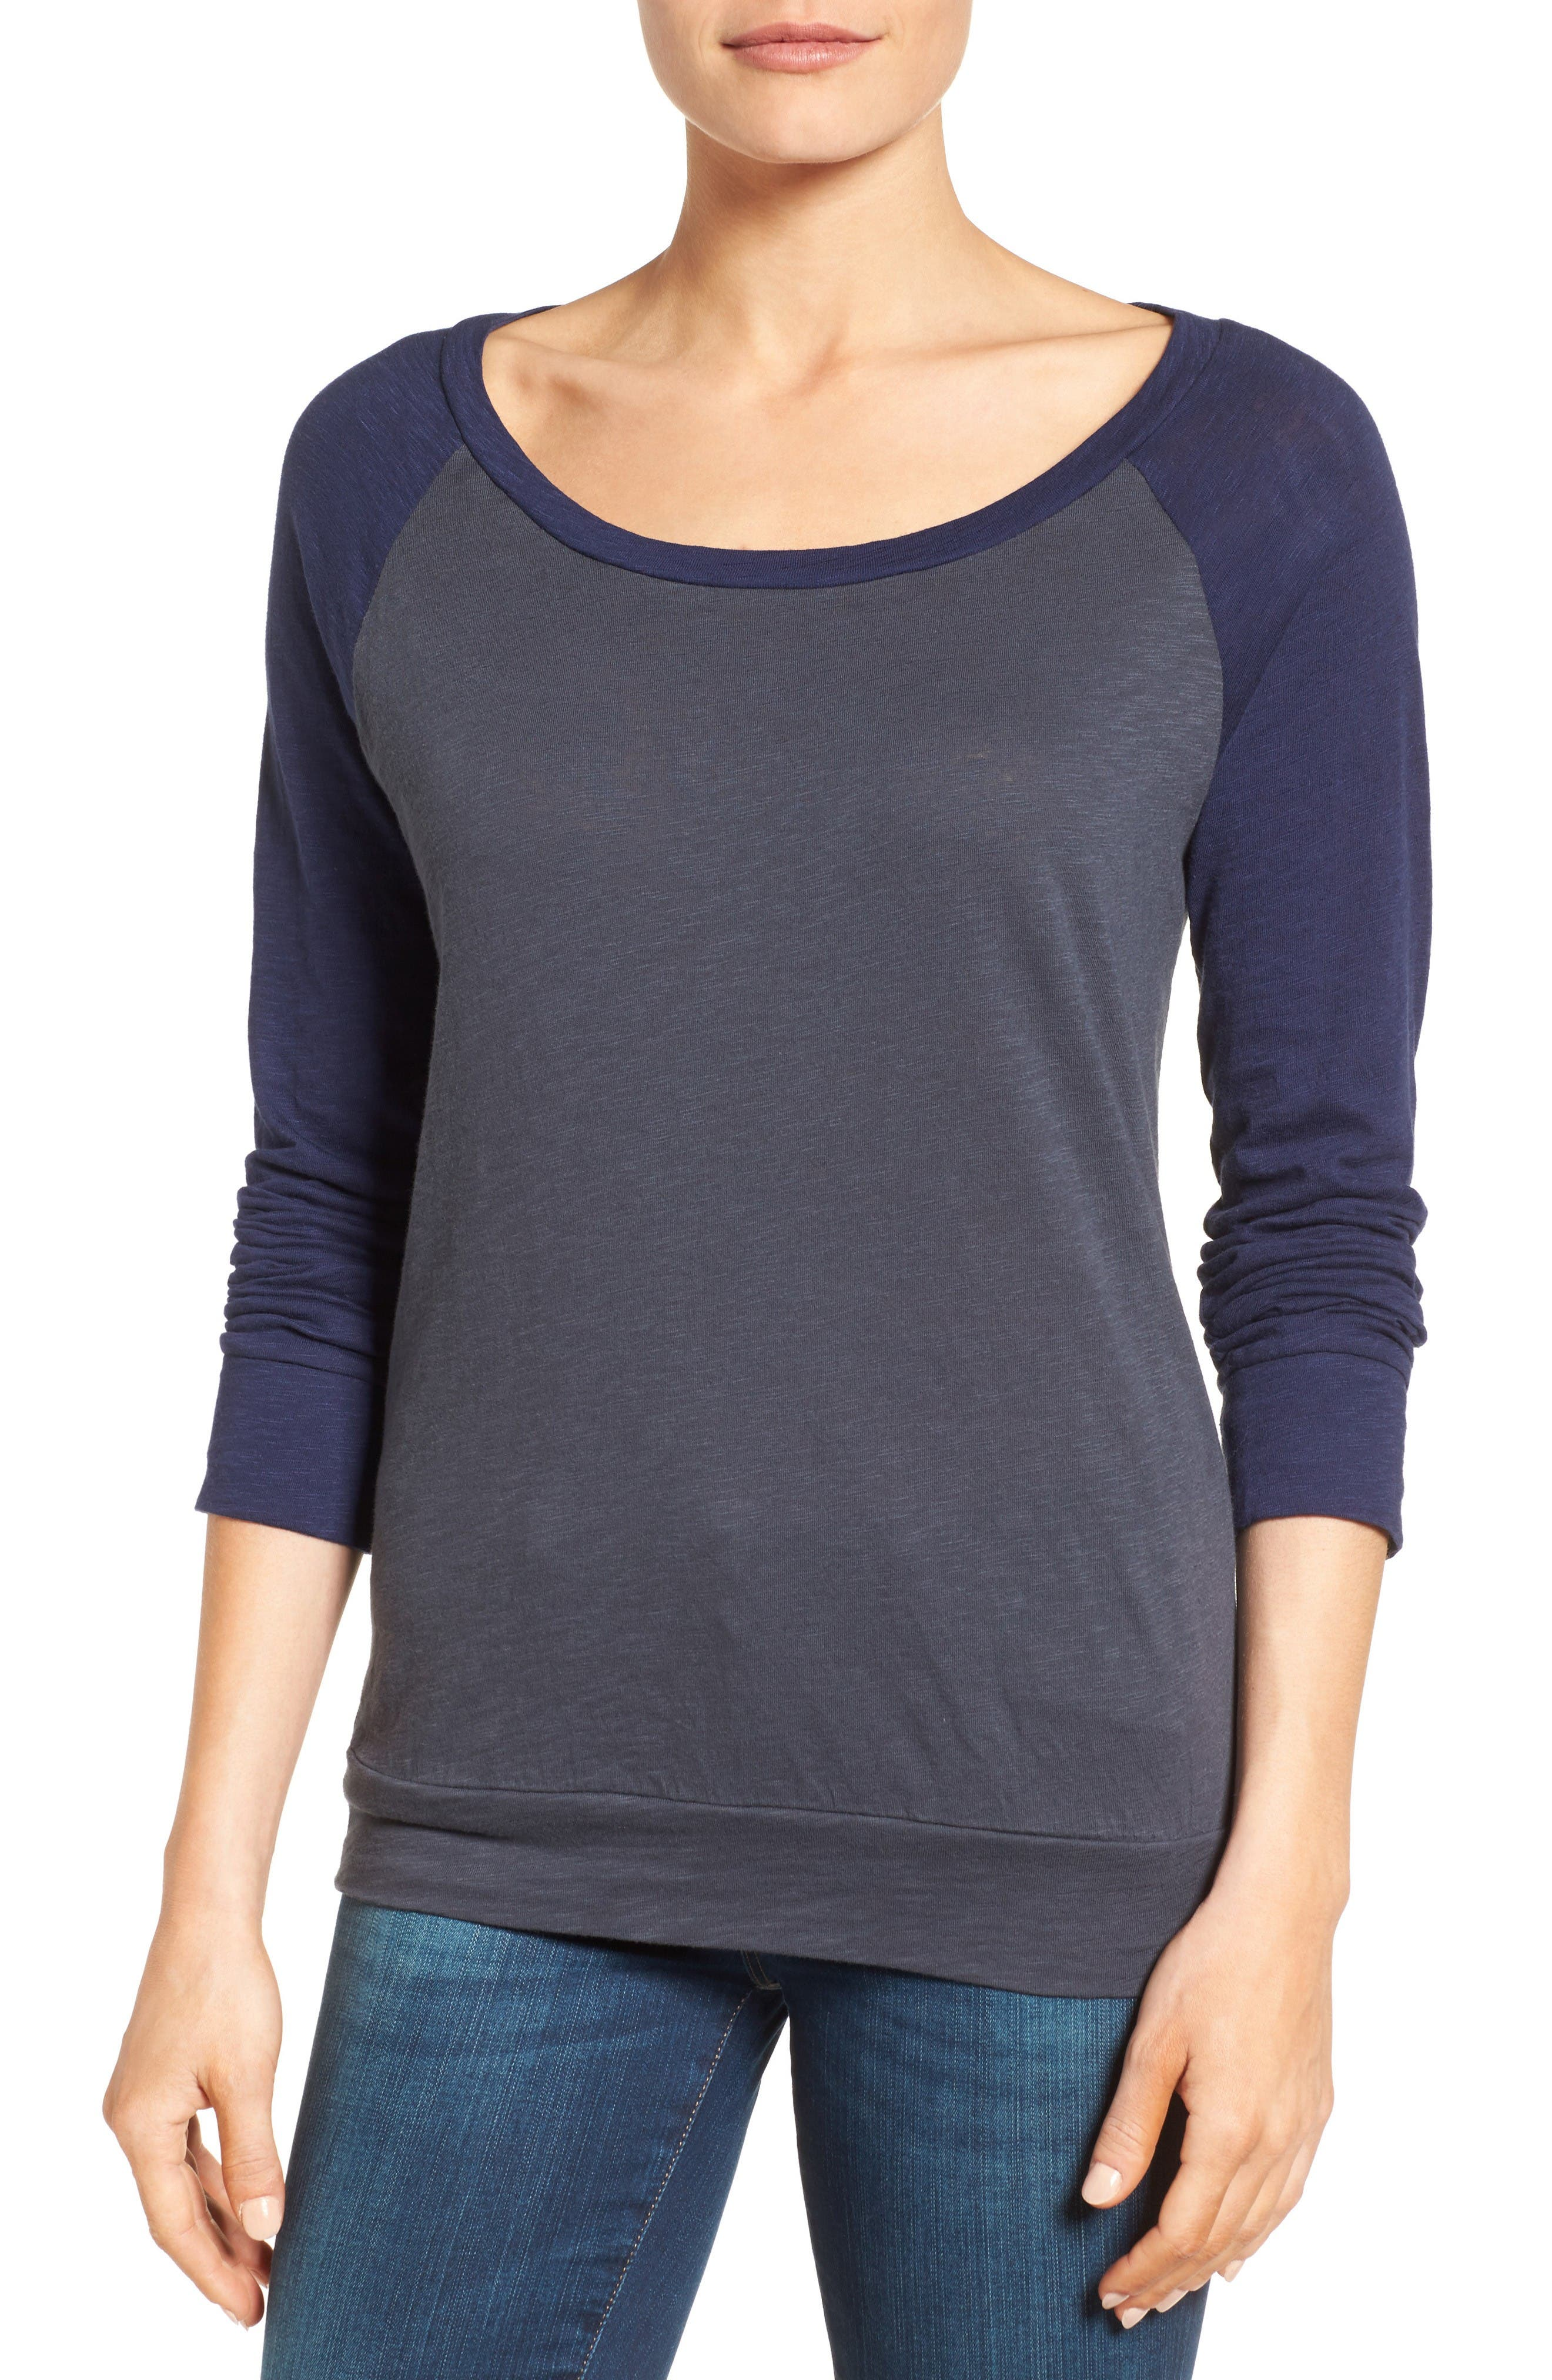 Lightweight Colorblock Cotton Tee,                             Main thumbnail 1, color,                             Grey- Navy Colorblock